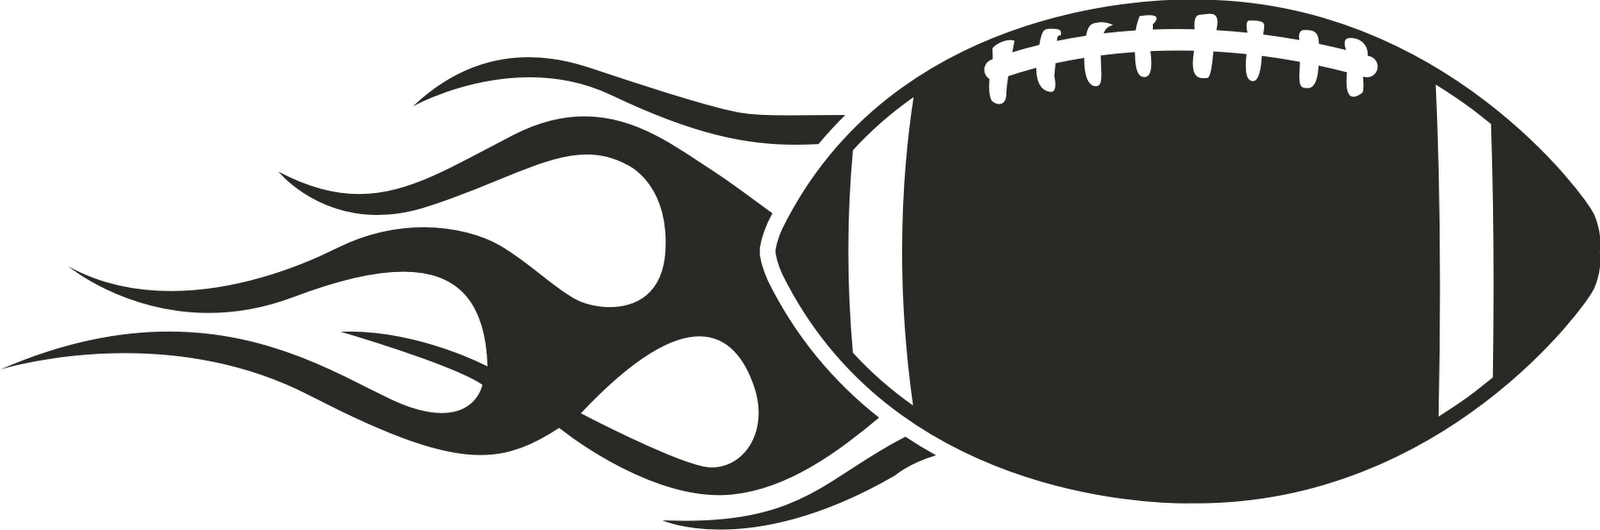 1600x530 Best Football Clipart